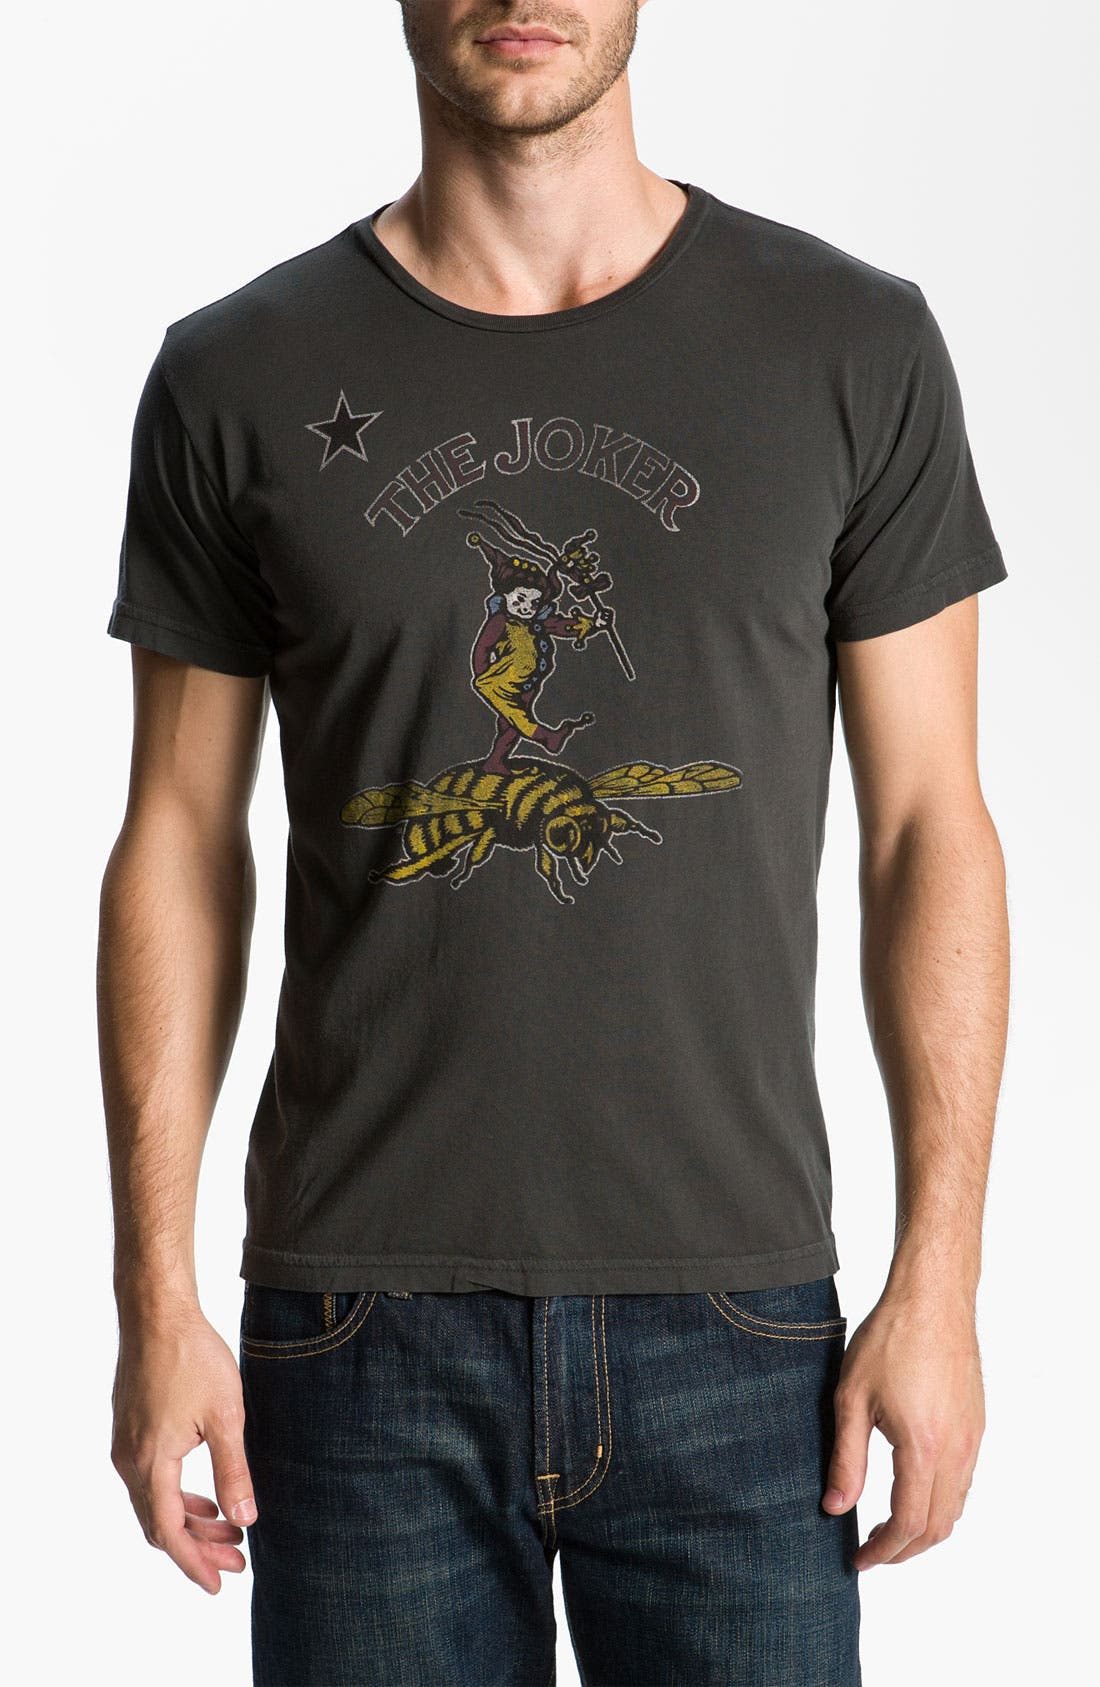 Alternate Image 1 Selected - Jacks & Jokers 'Joker Bee' T-Shirt